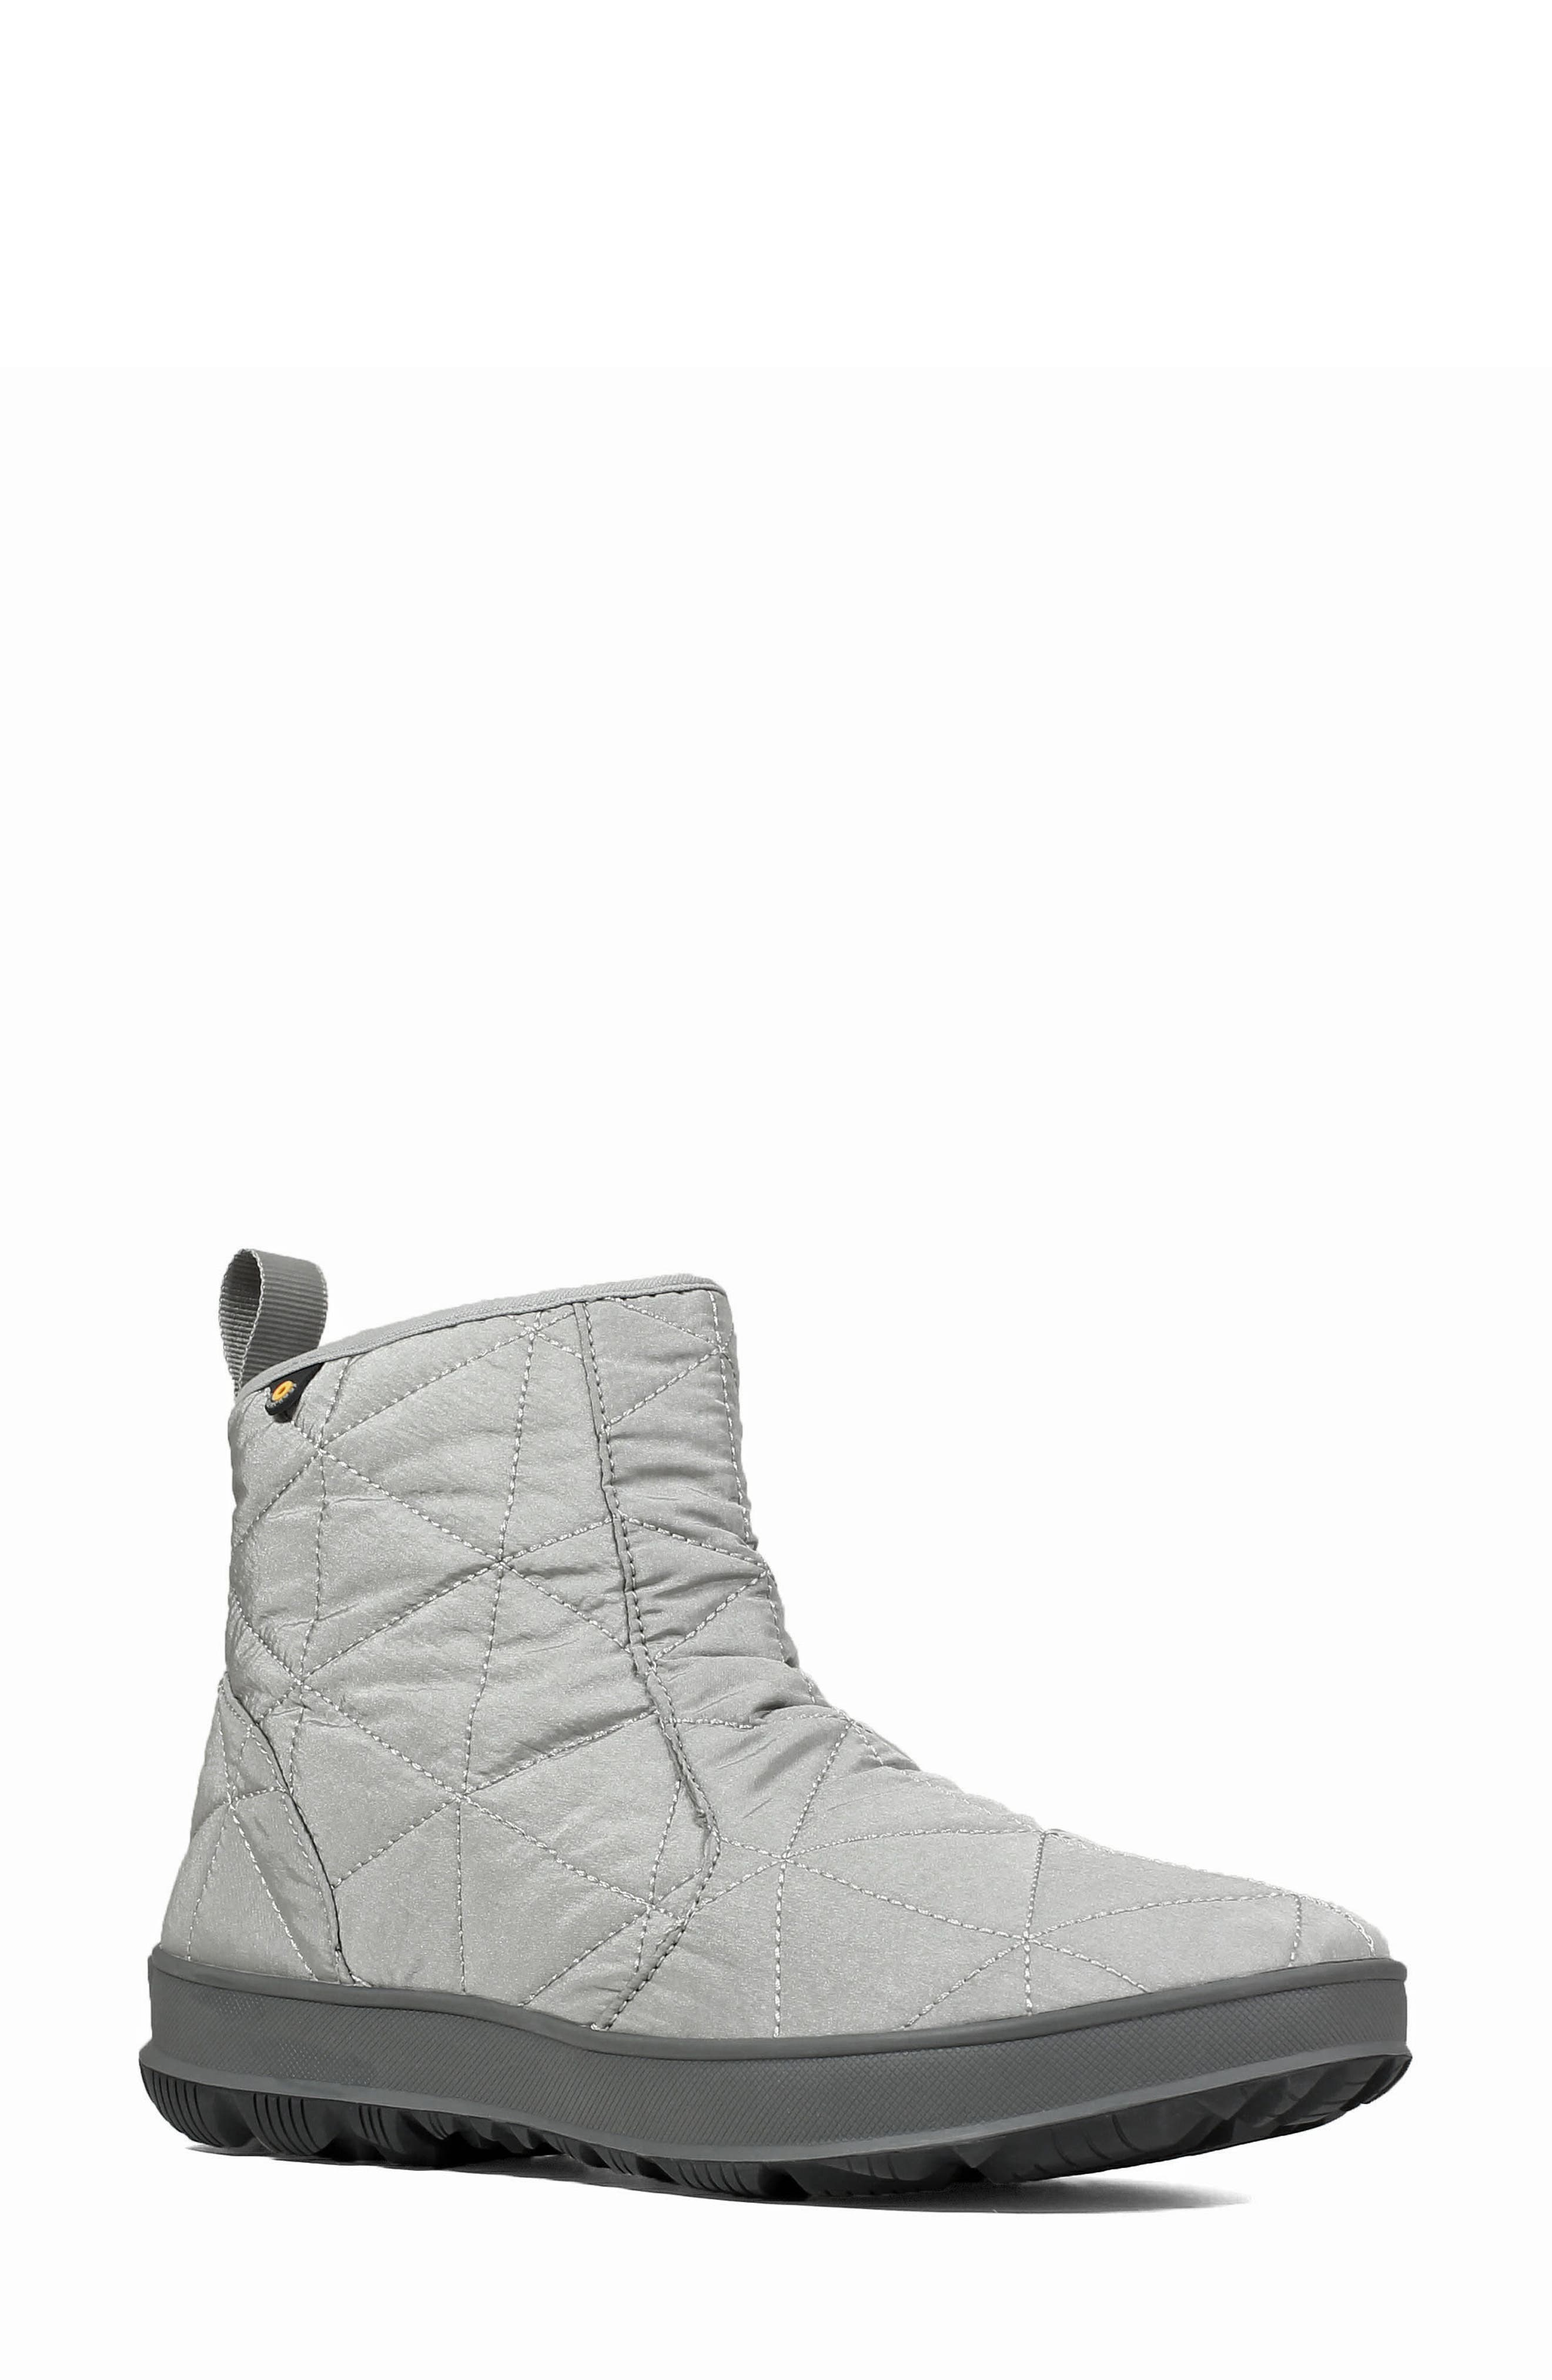 Bogs Snowday Waterproof Quilted Snow Boot, Grey